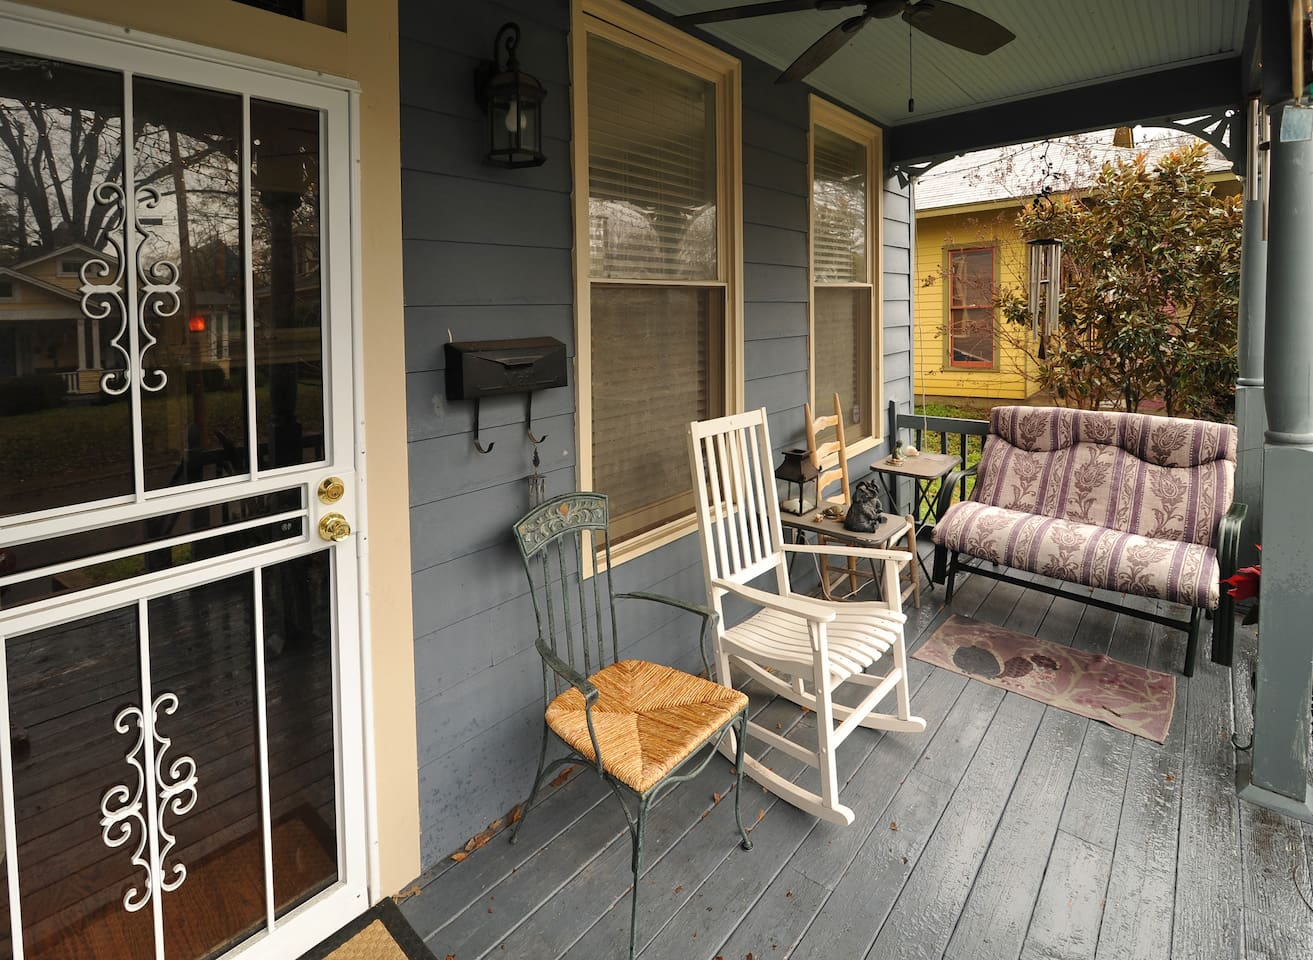 This is a nice sitting porch especially in the Spring and Fall. Has a full view of the life in and around Cooper Young Neighborhood.